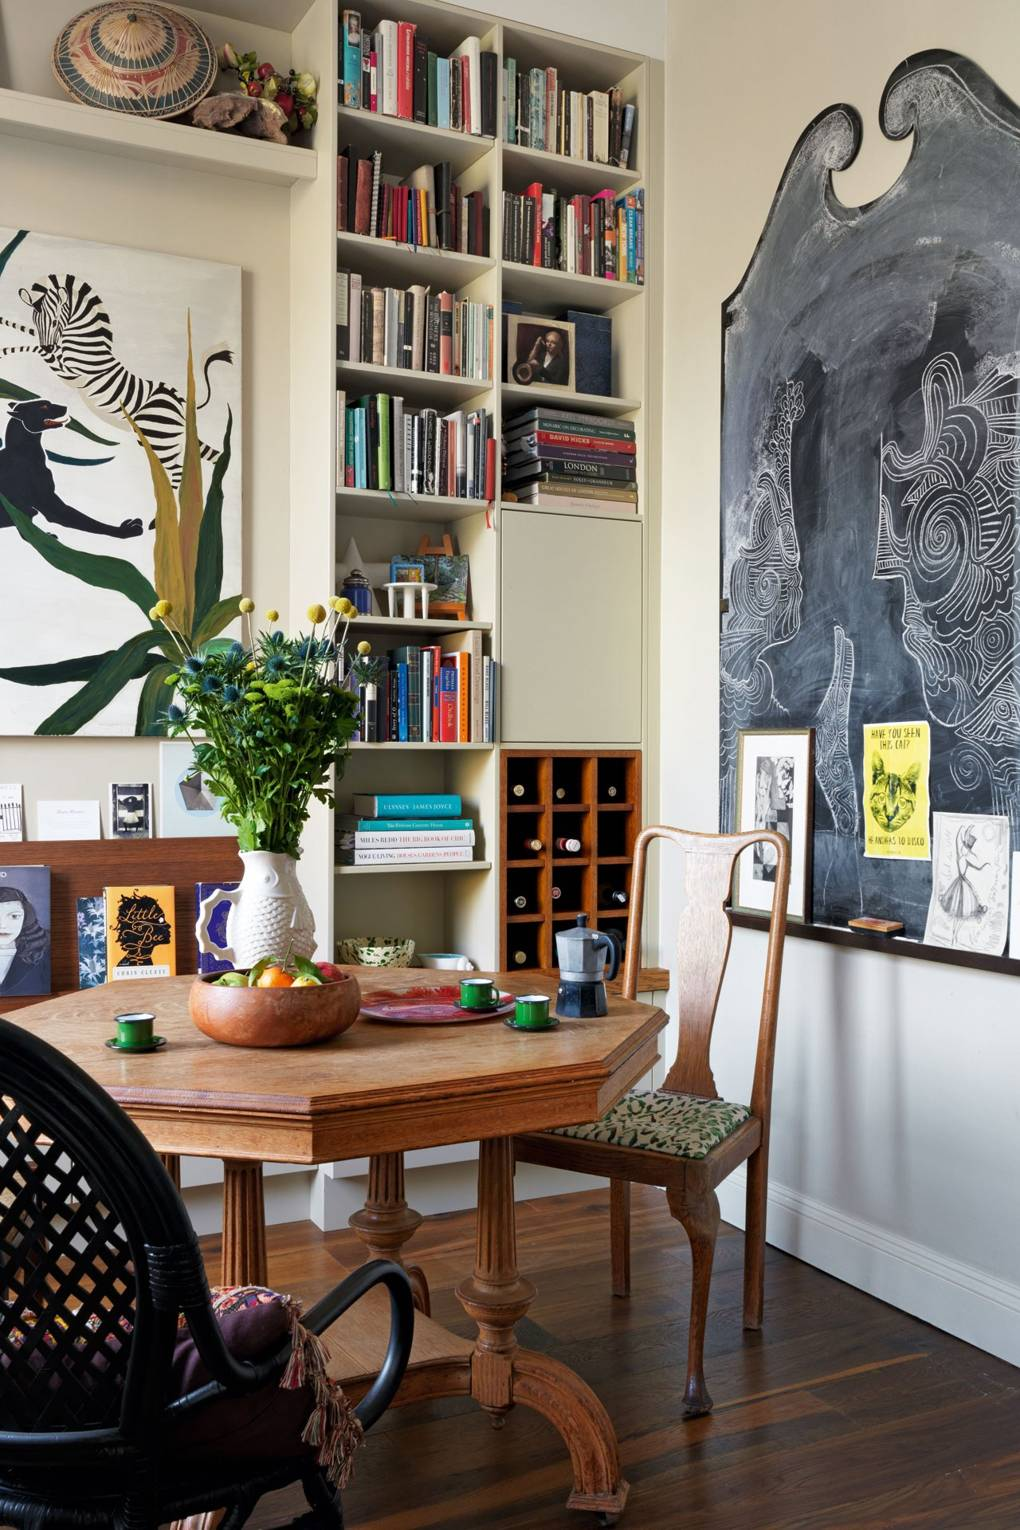 Beata Heuman's small London flat | House & Garden